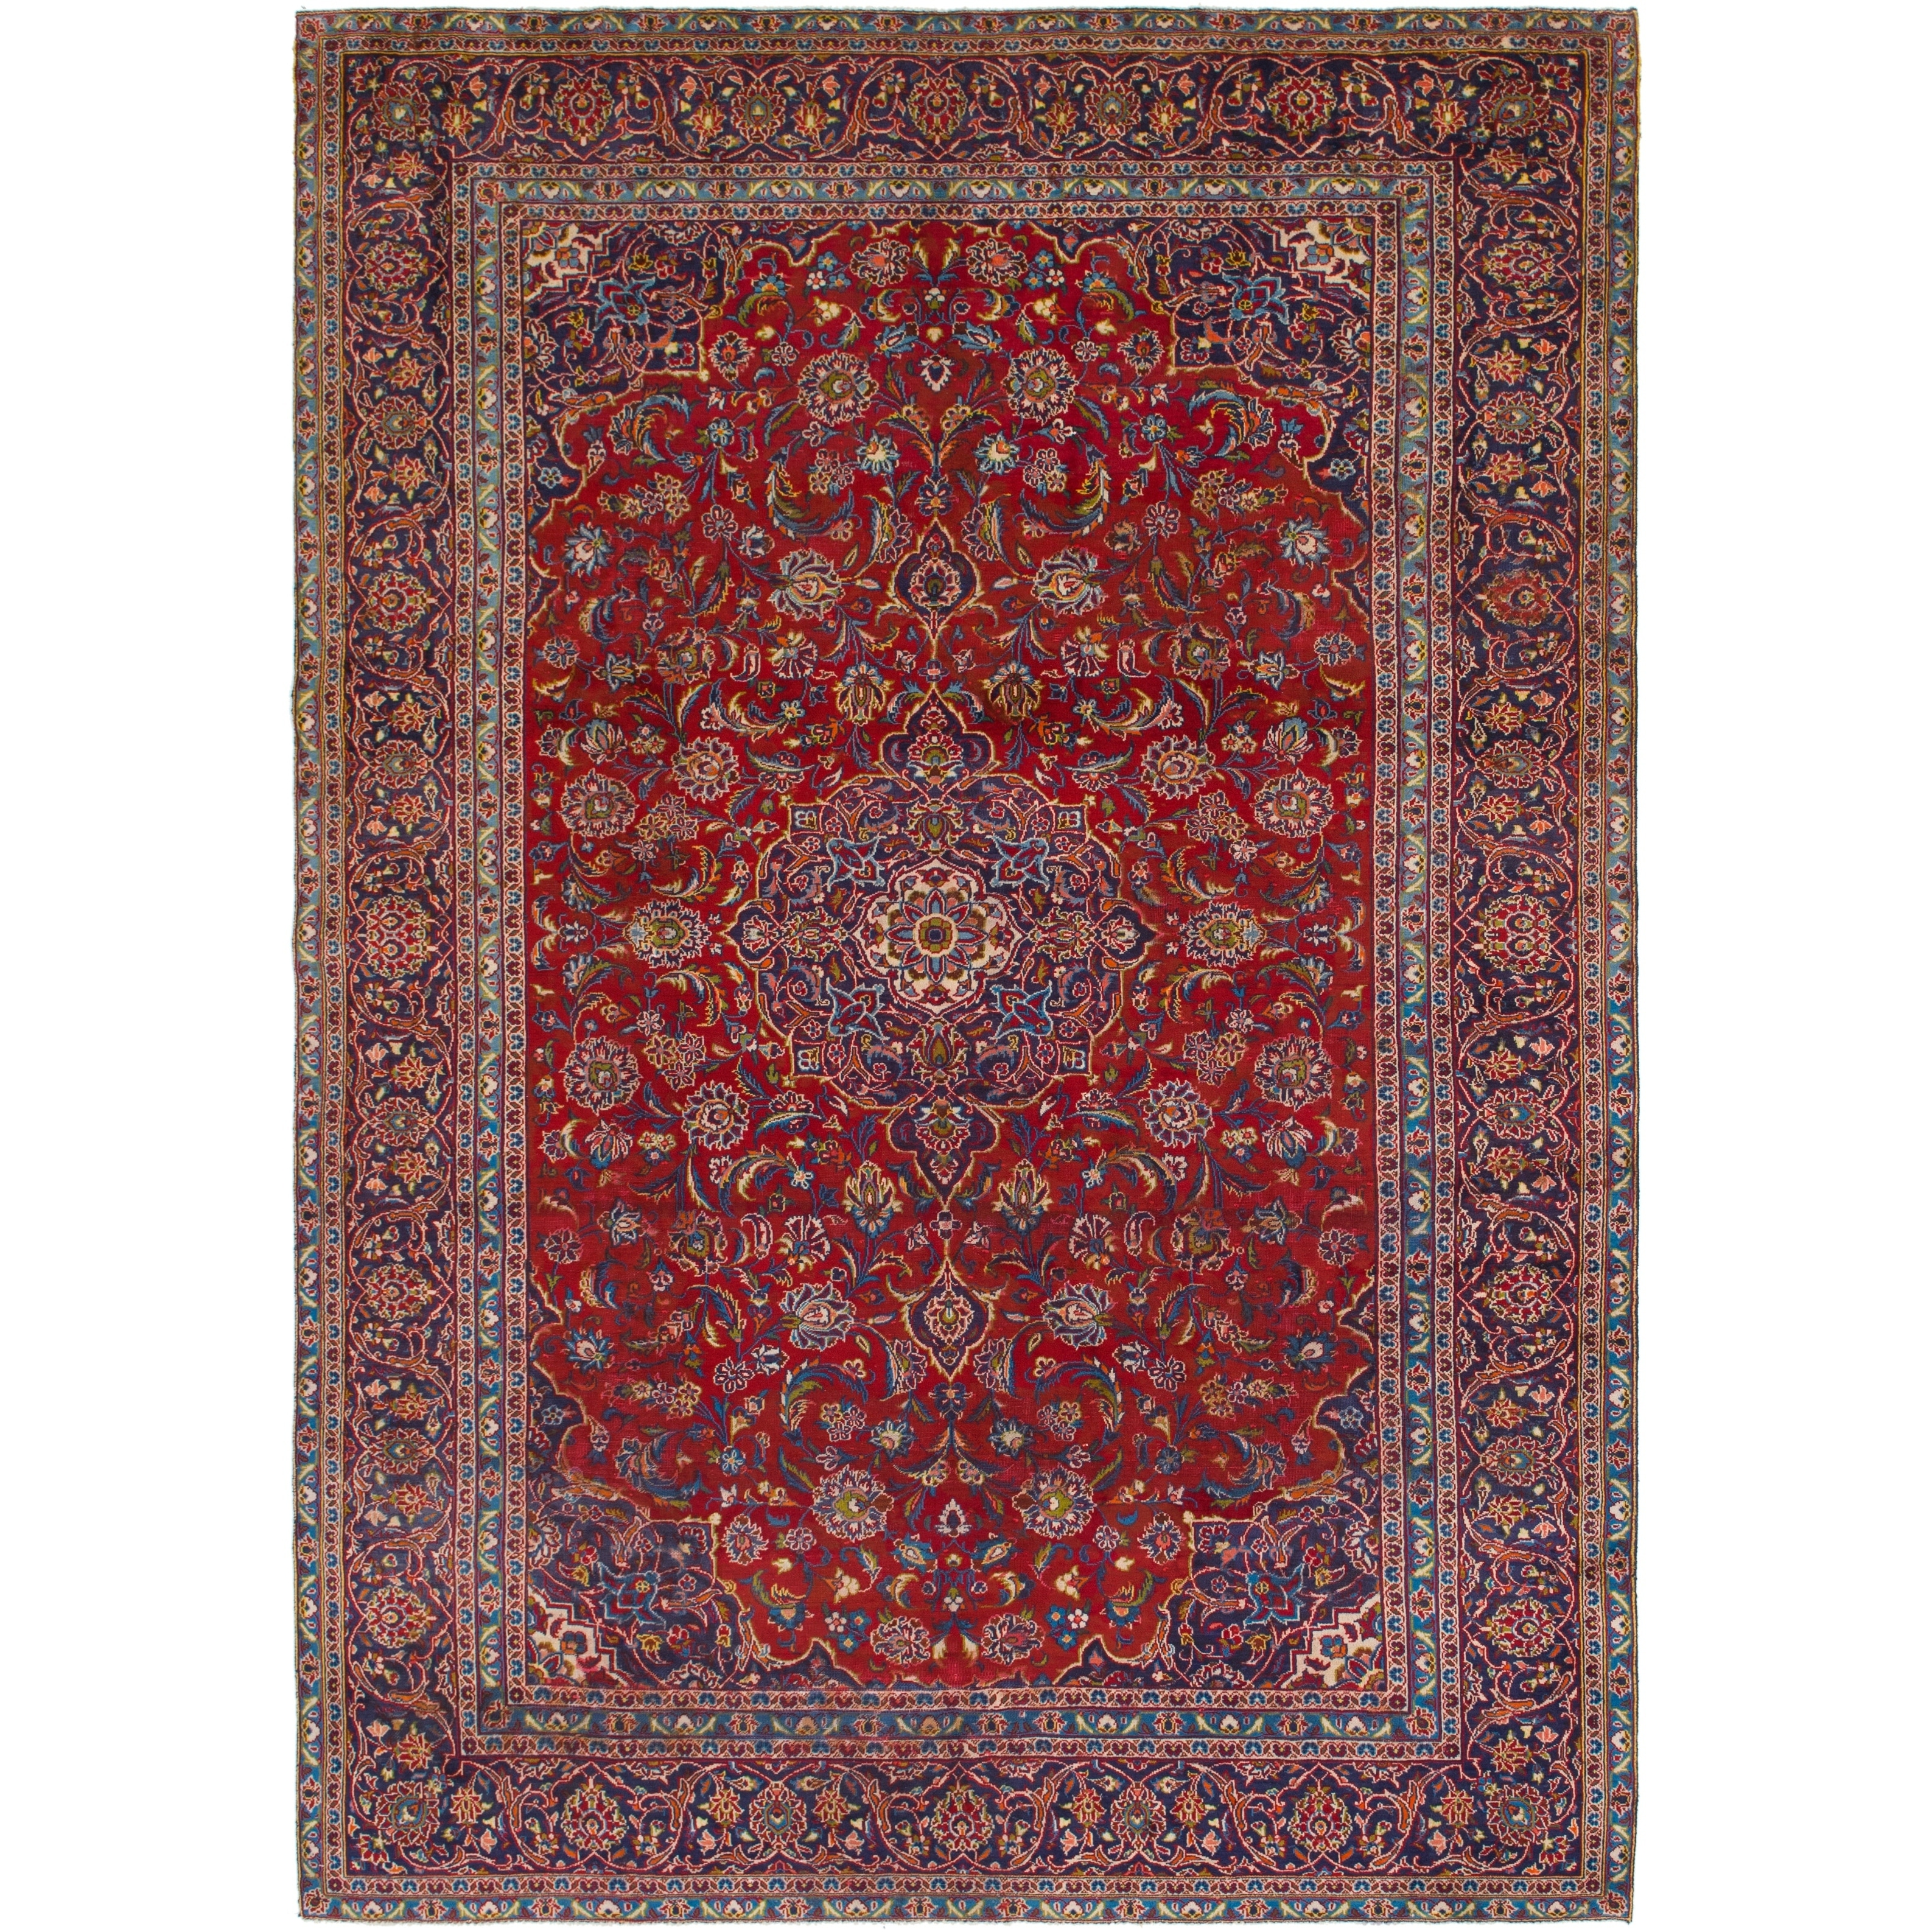 Hand Knotted Kashan Semi Antique Wool Area Rug - 9 4 x 13 4 (Red - 9 4 x 13 4)